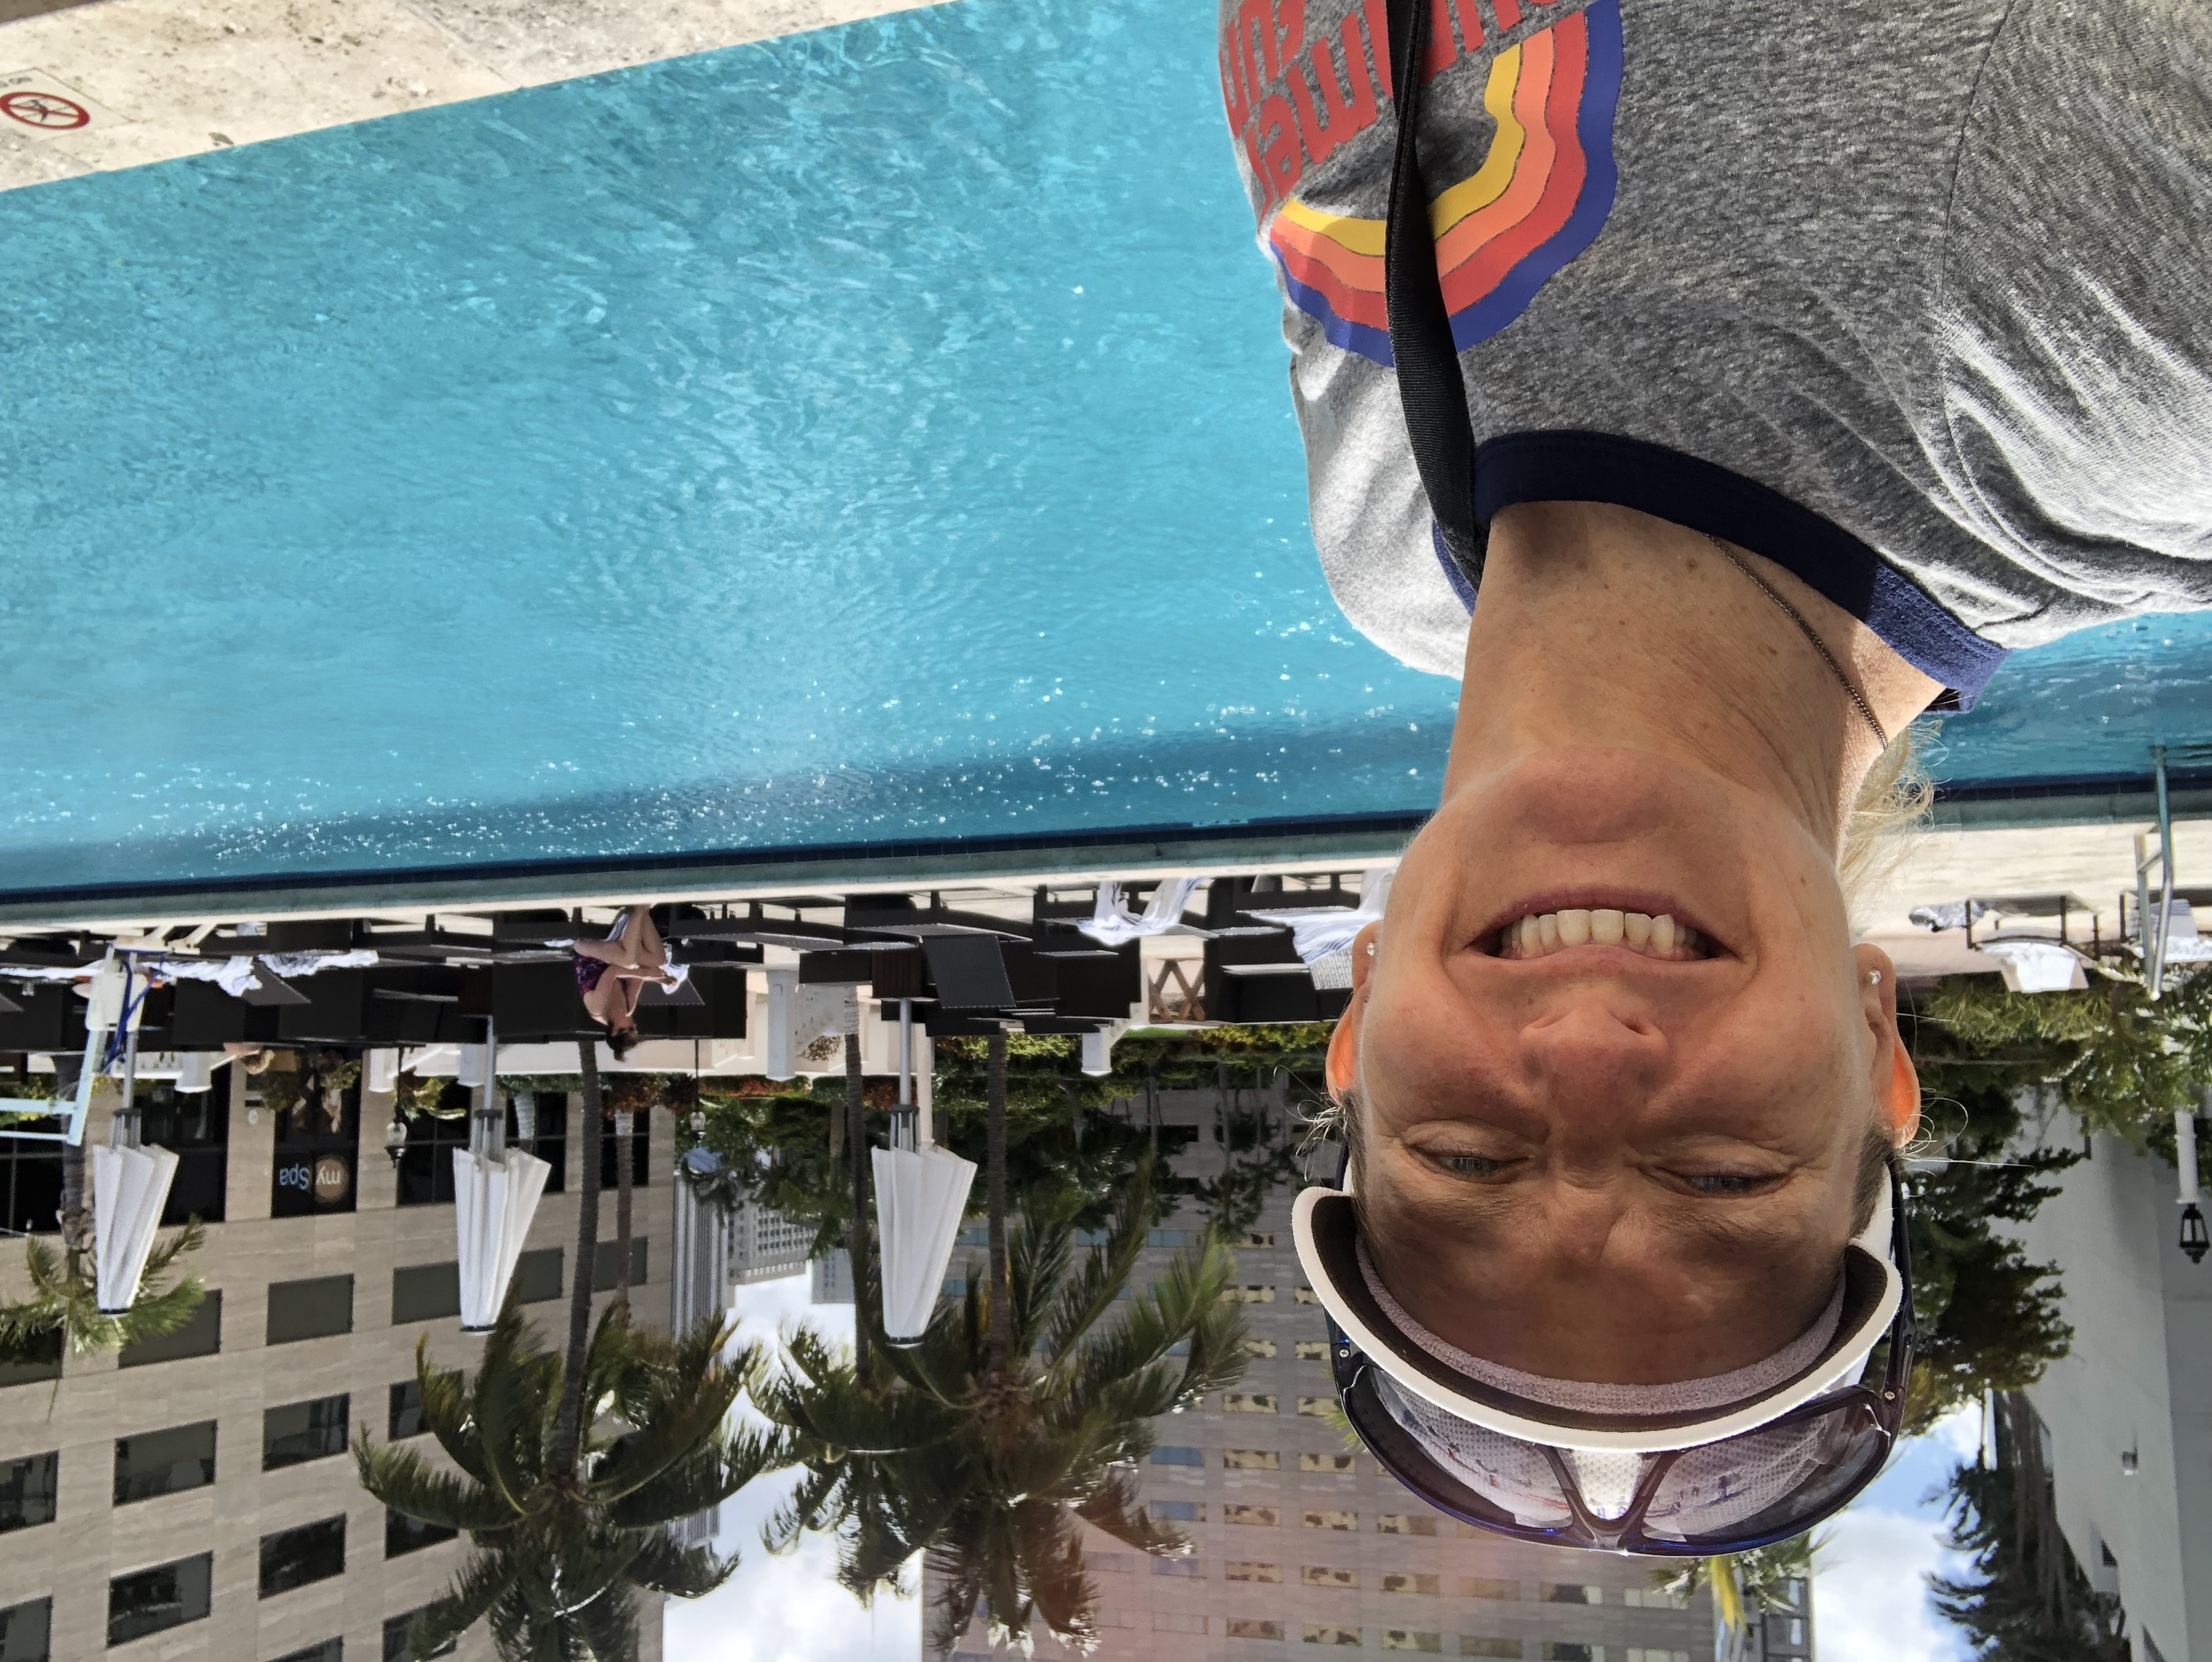 Having fun at the WSSC in Miami... poolside!